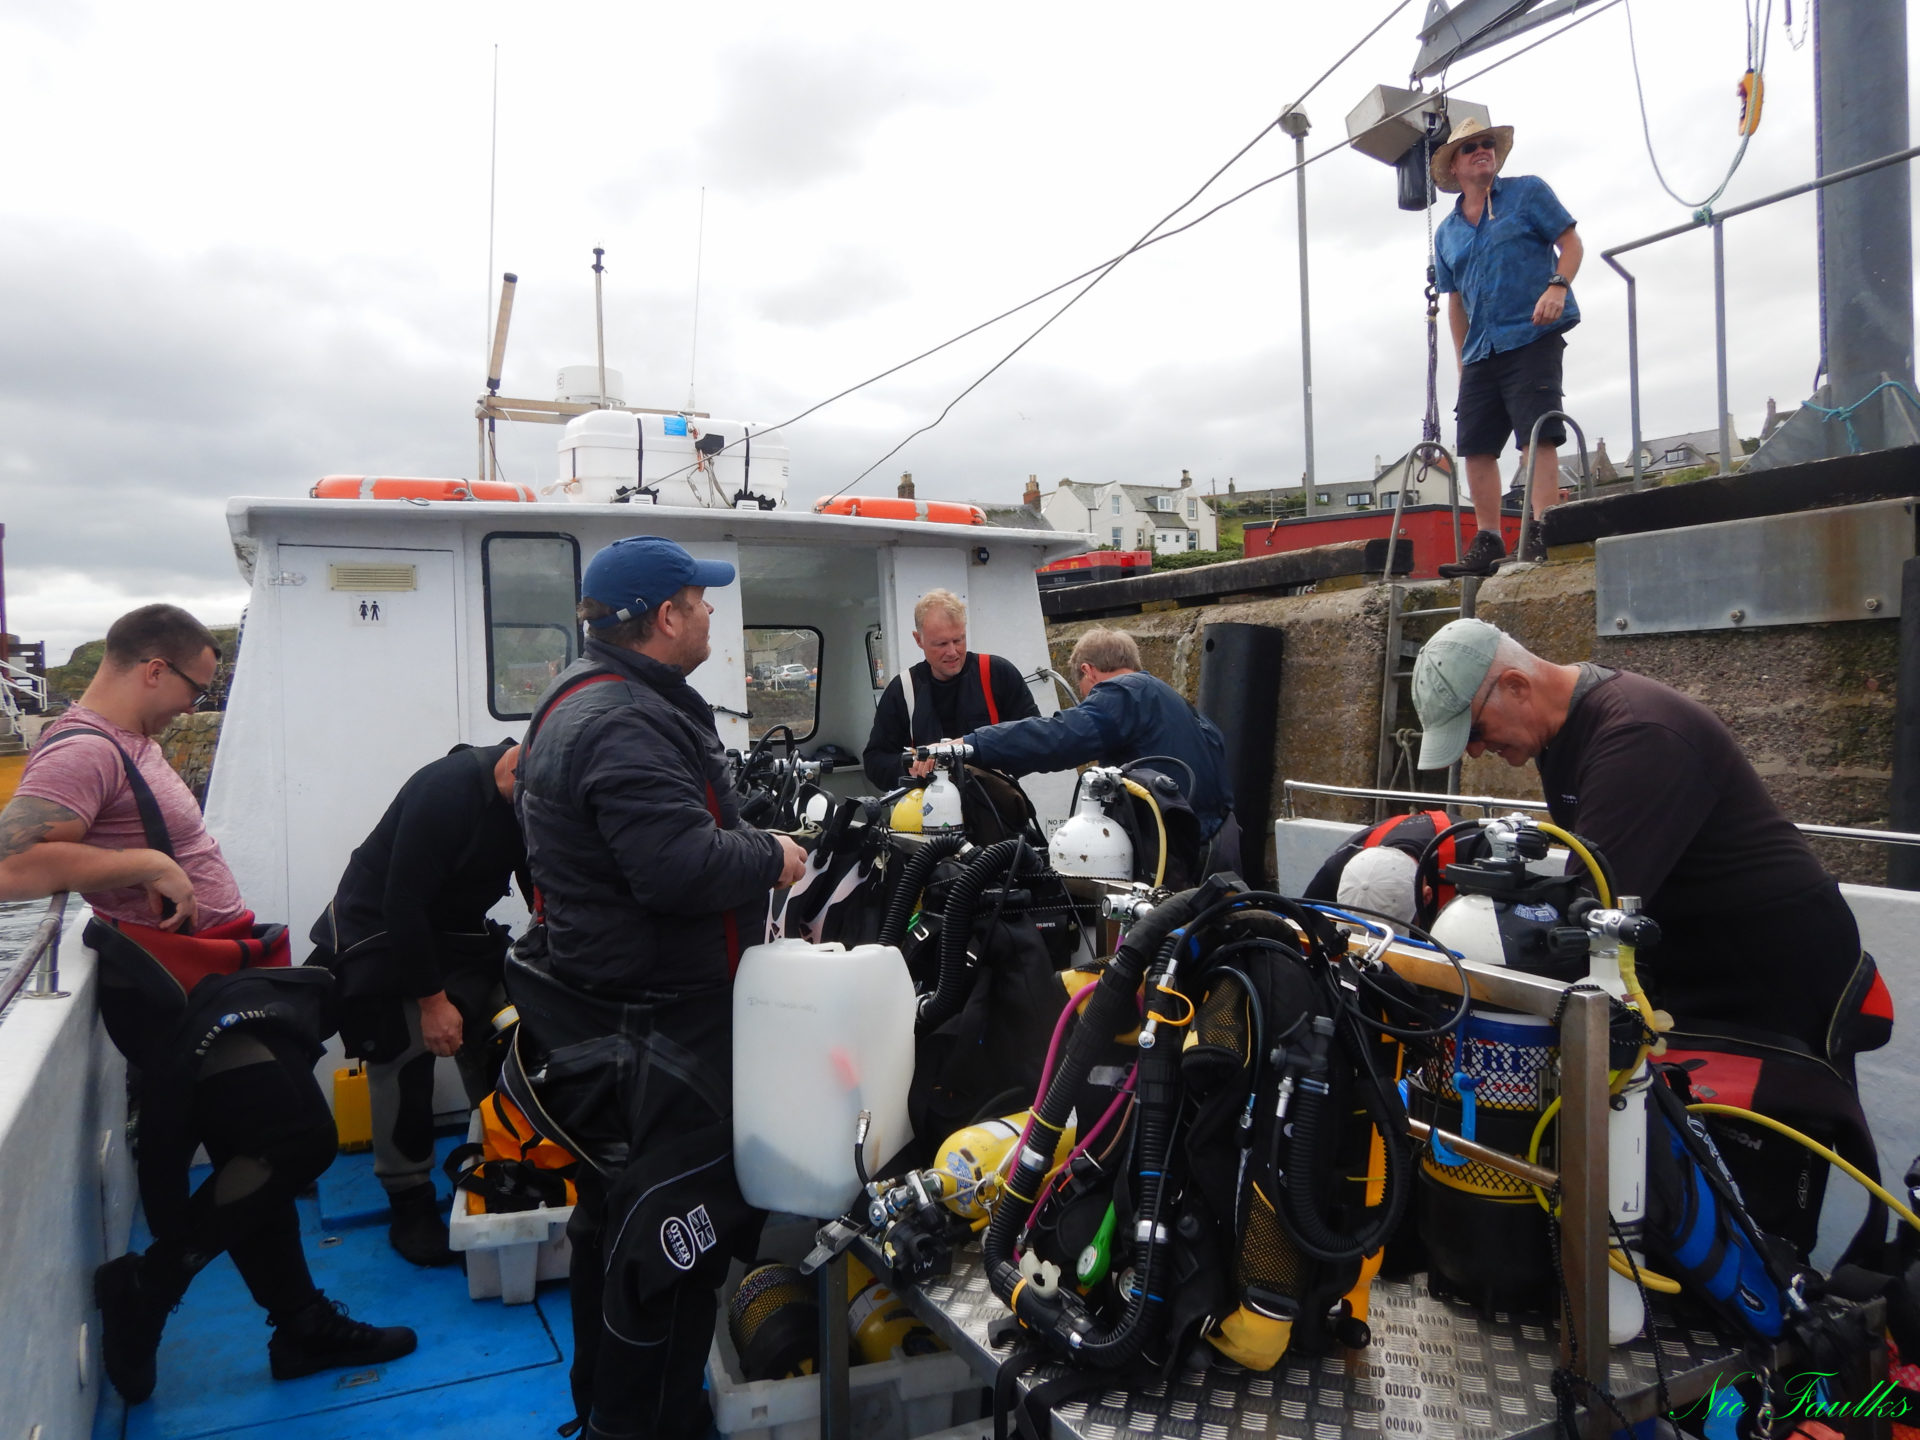 Divers preparing on the boat